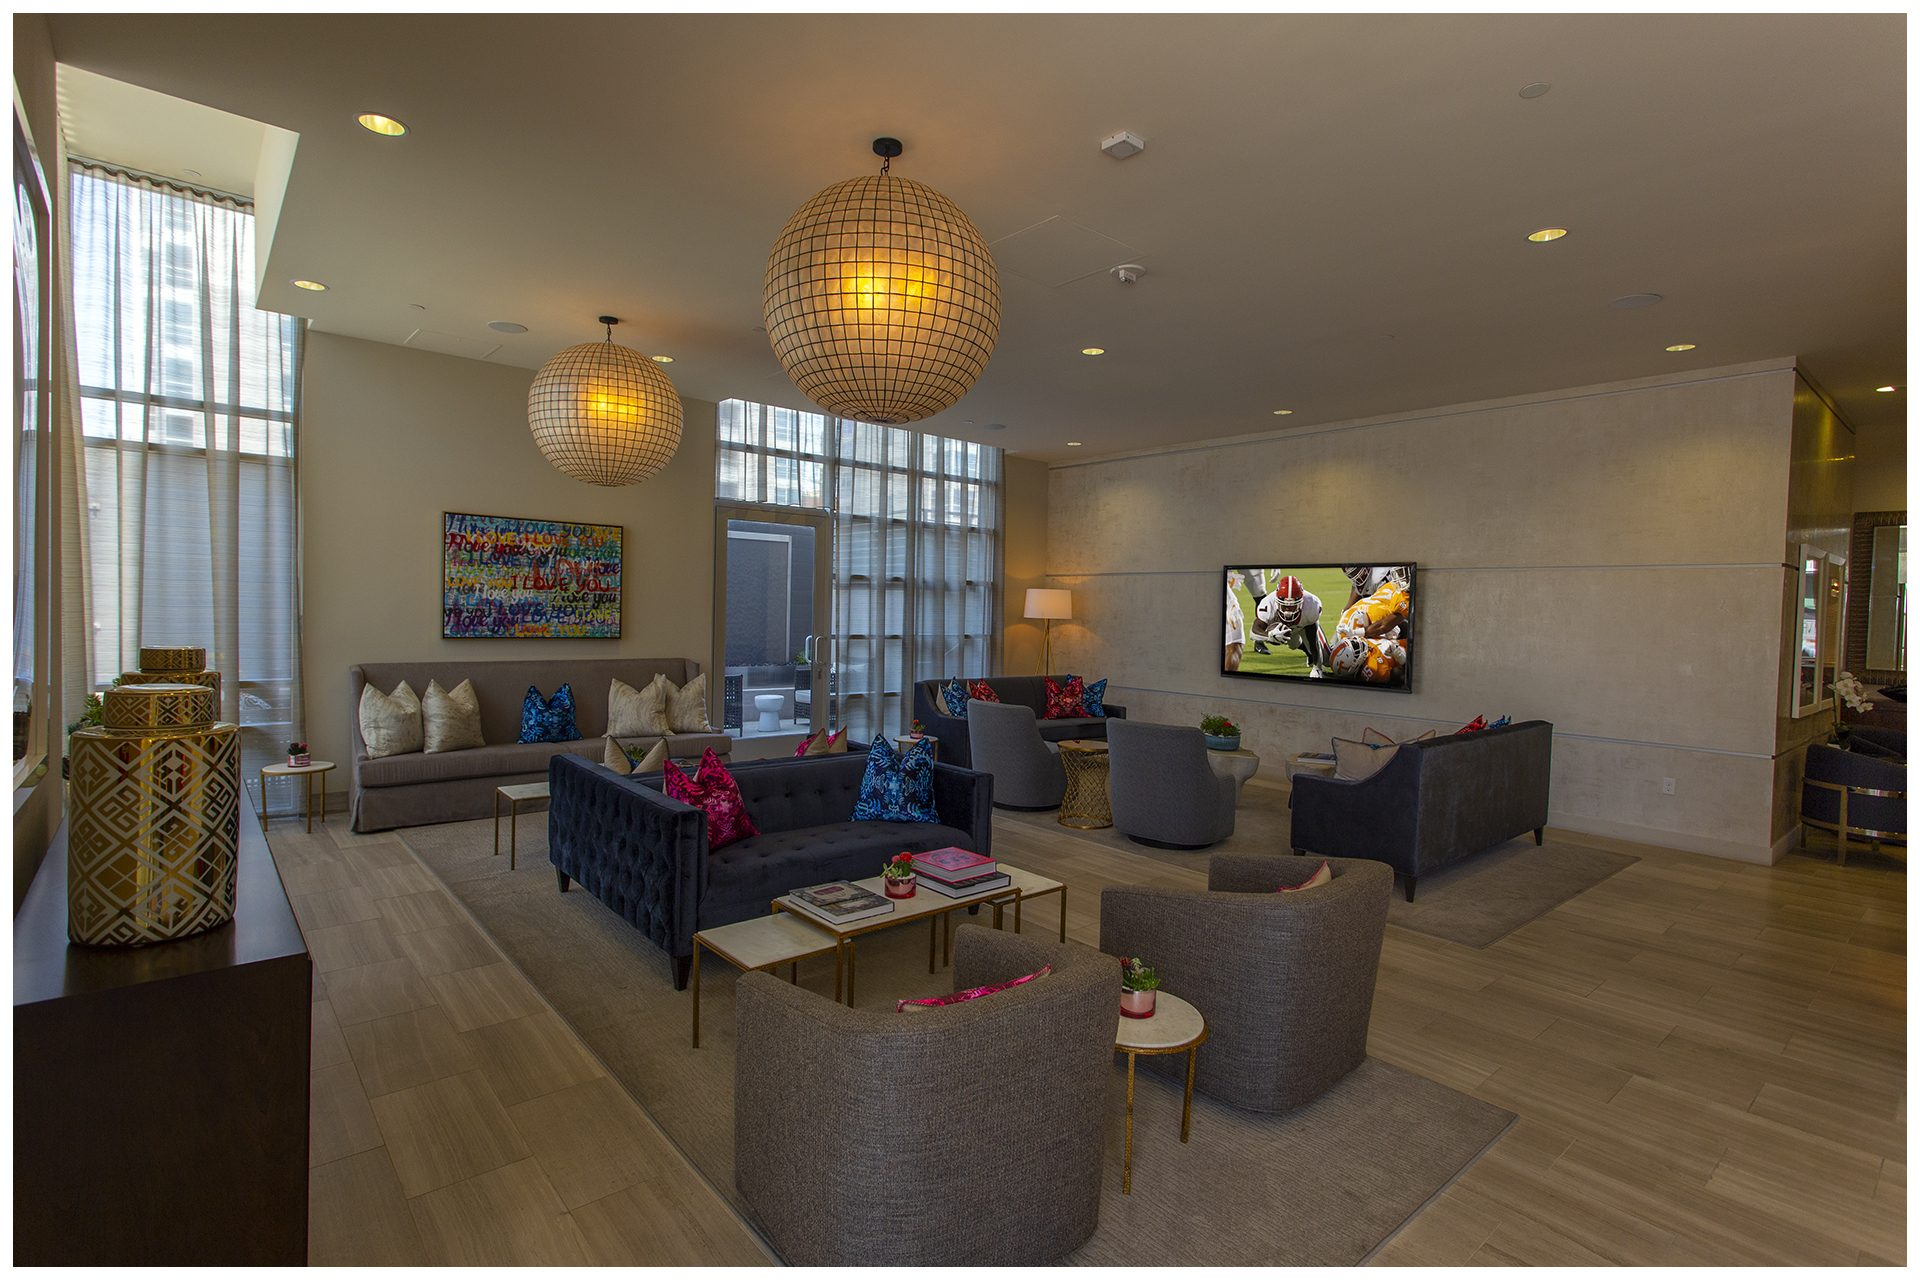 MAIN  LOBBY LOUNGE PROVISIONSMain Lobby   Lounge Audio Video &  WiFi; Audio Video provisions controlled remotely from leasing office iPad.